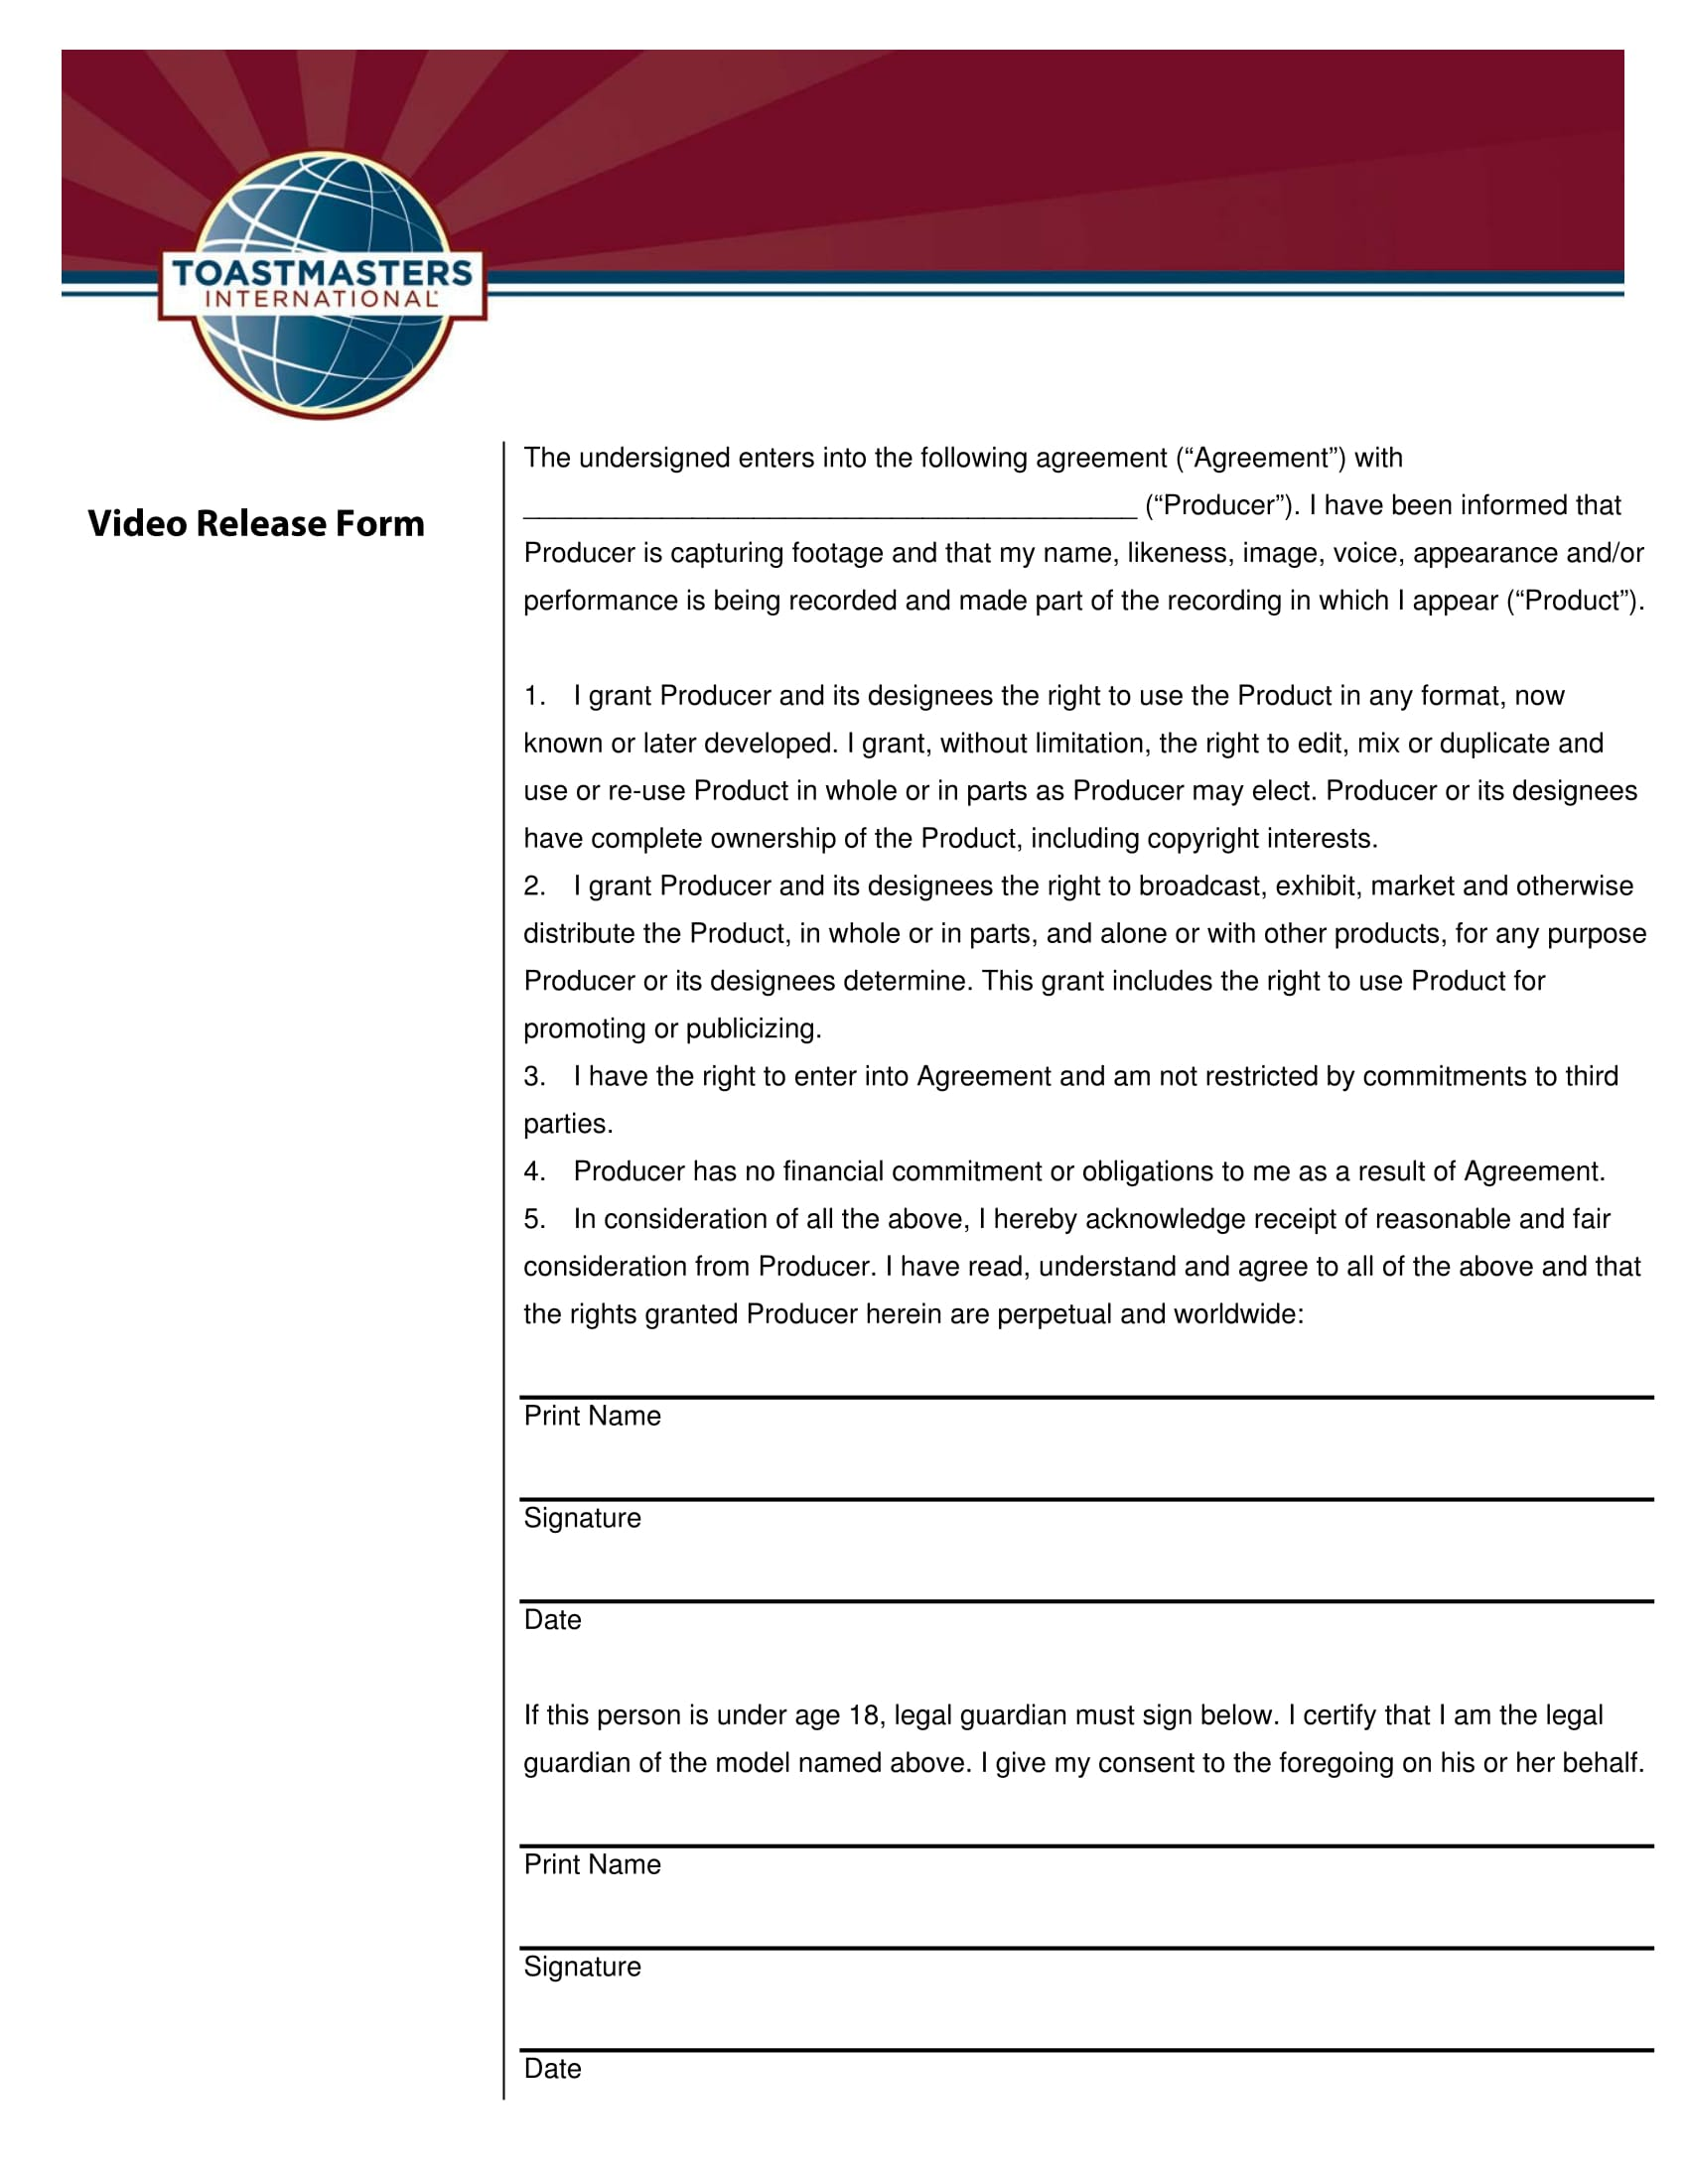 video release form in pdf 1